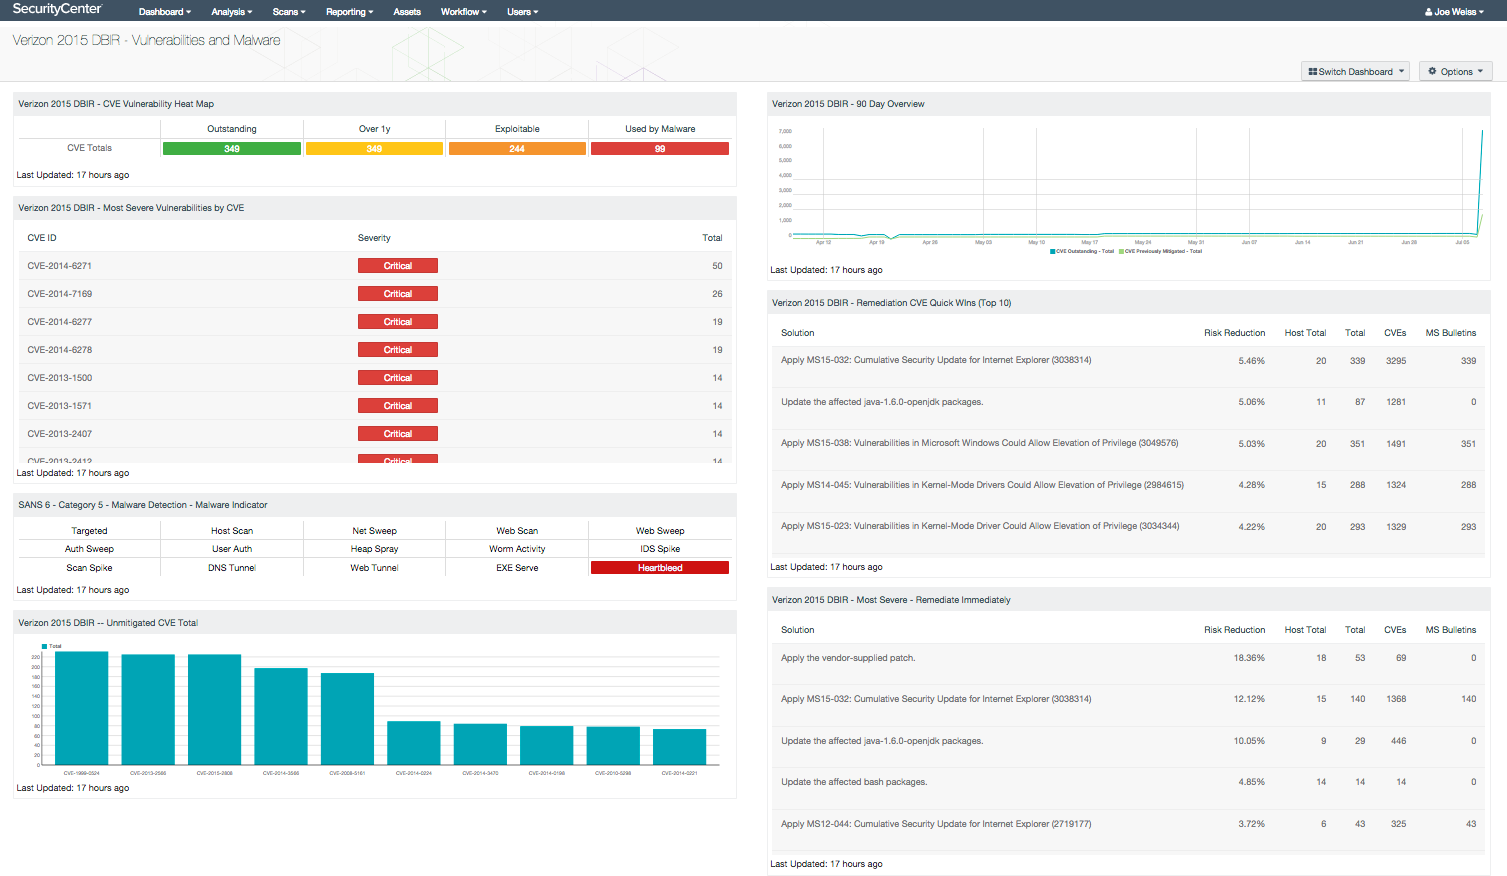 Vulnerabilities and malware dashboard